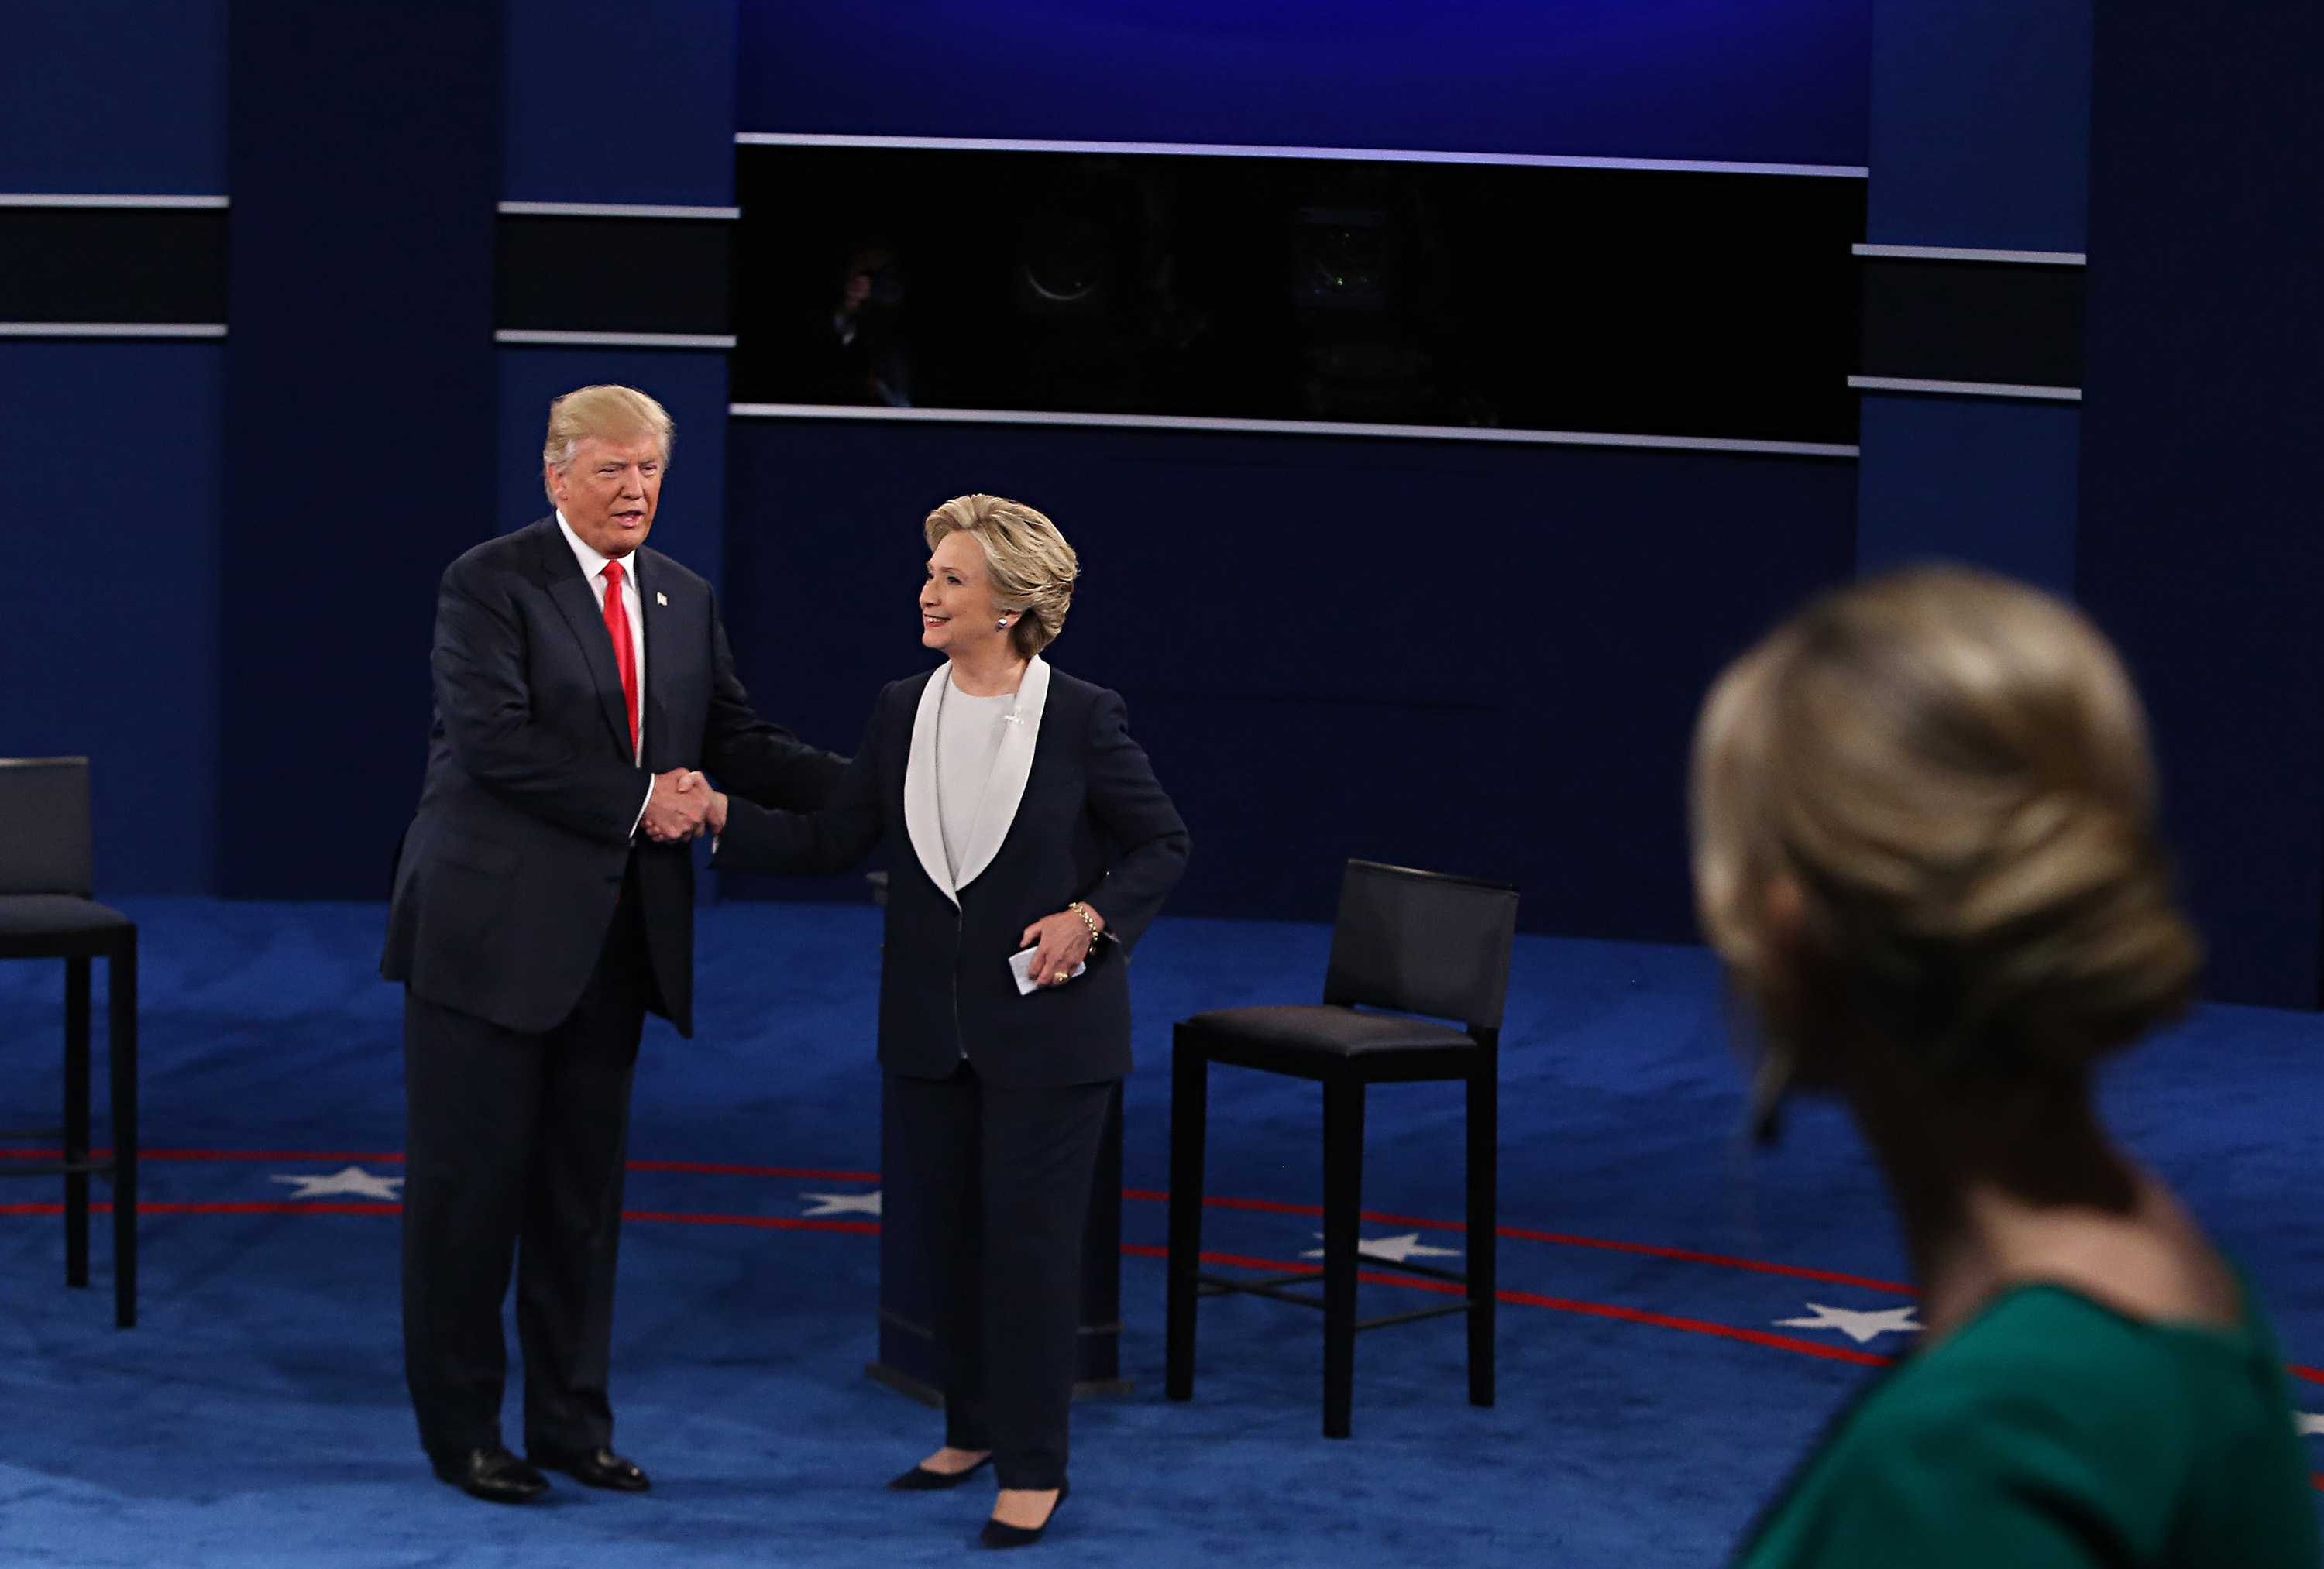 Trump and Clinton shake hands